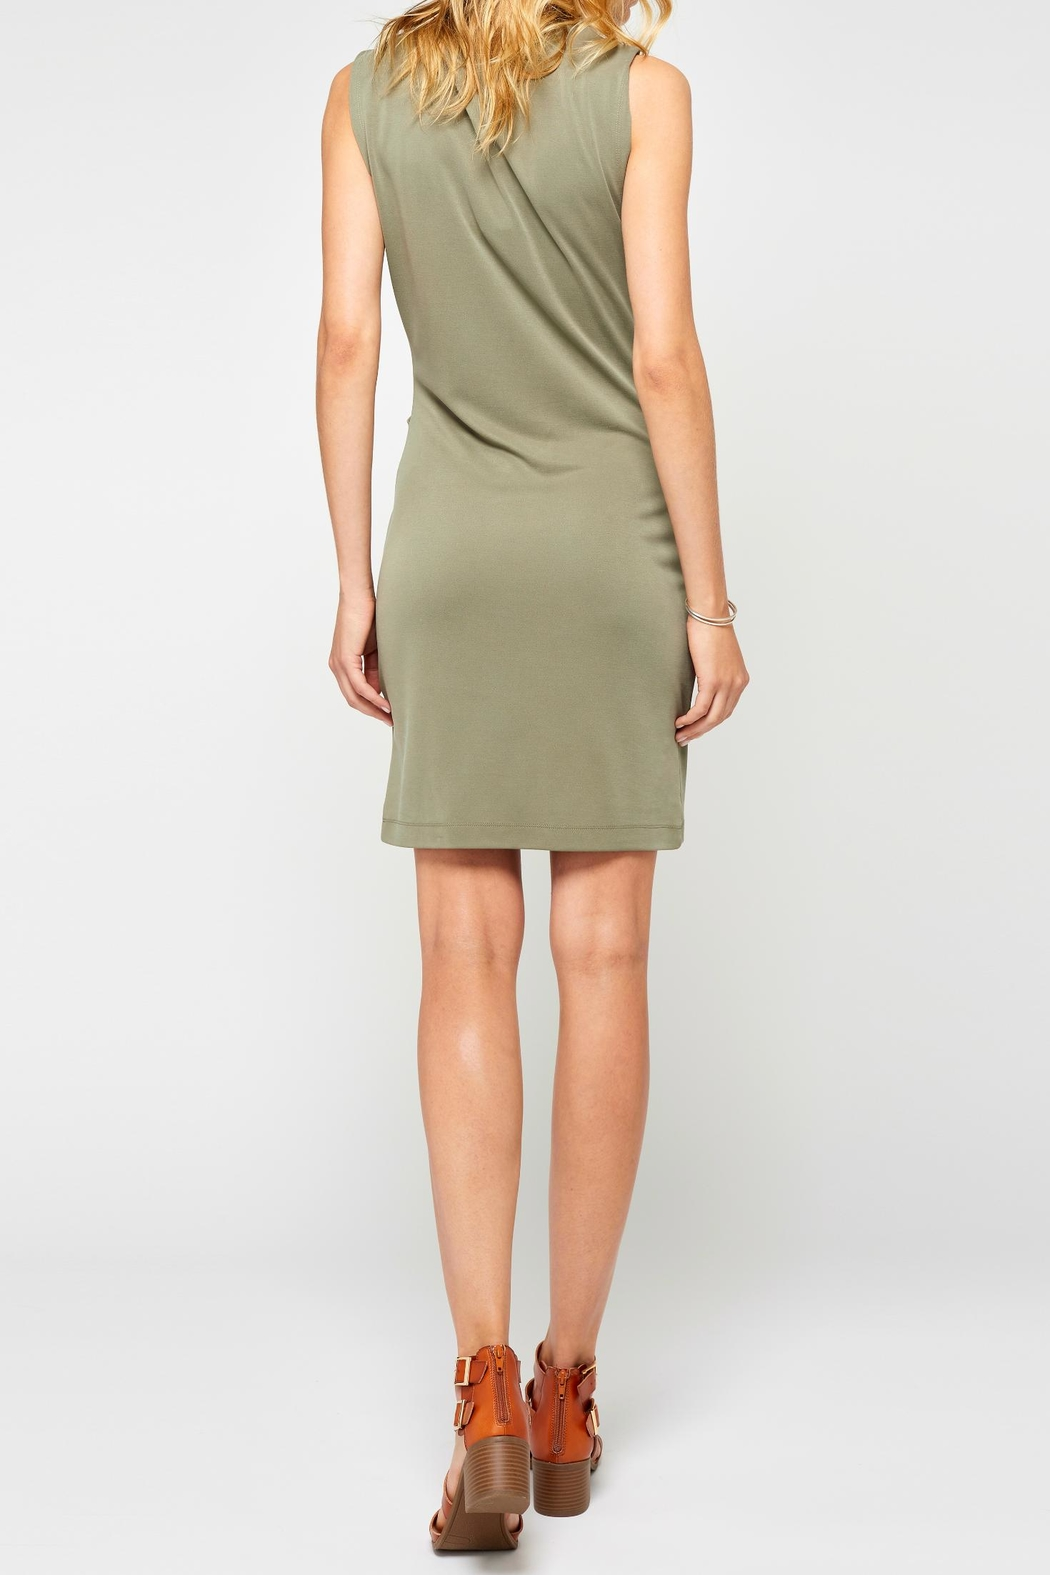 Gentle Fawn Bodycon Mini Dress - Front Full Image